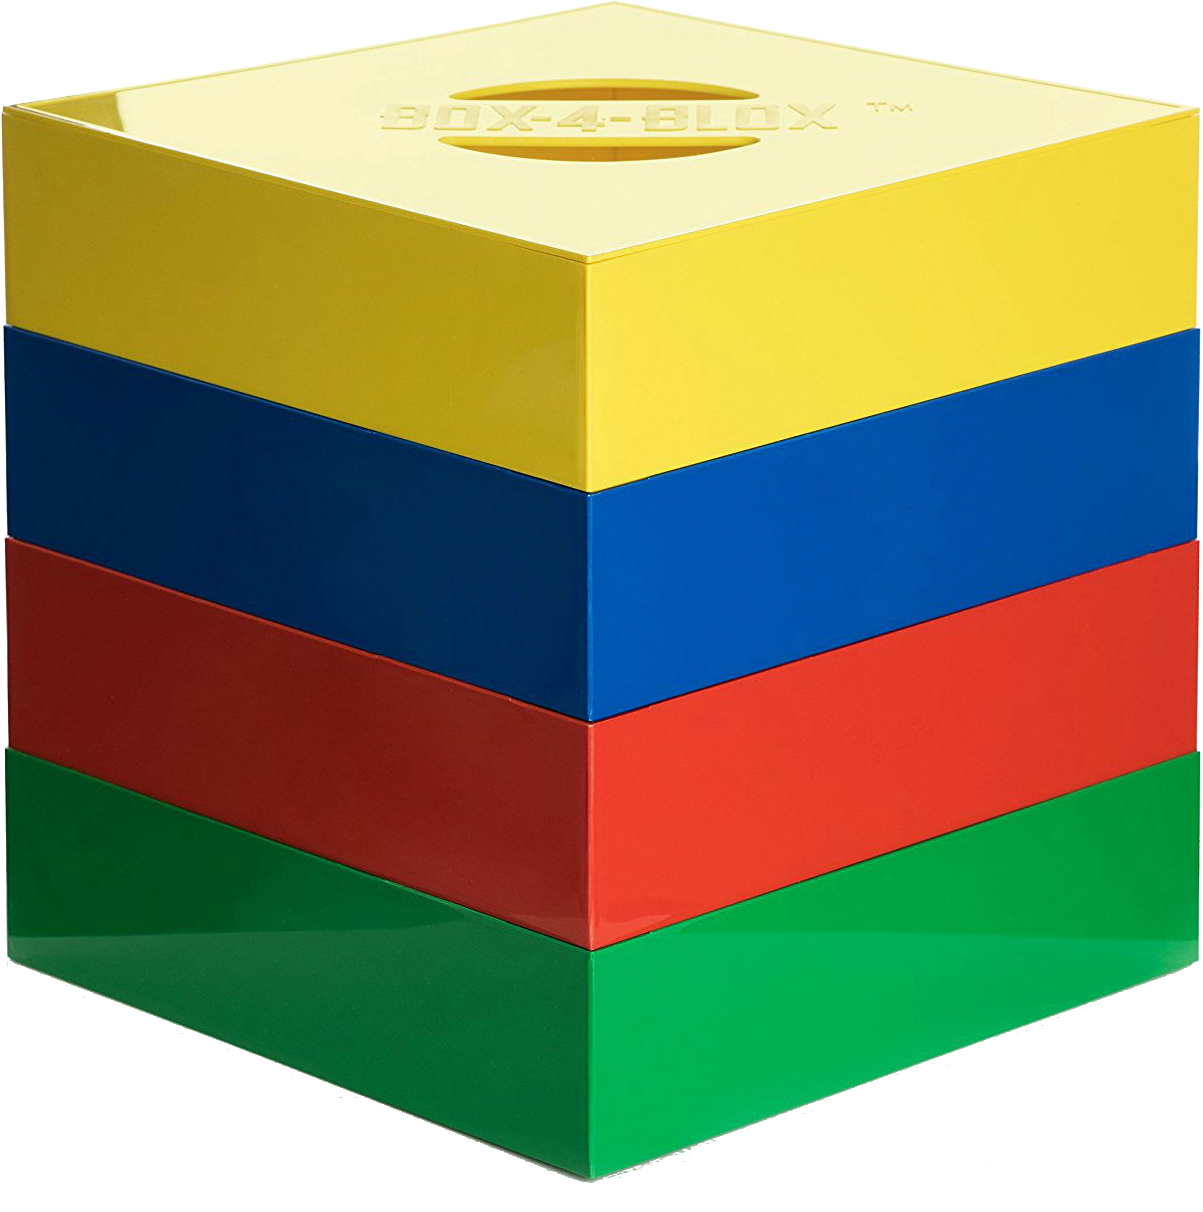 Lego archives blox organizer. Clipart box storage bin